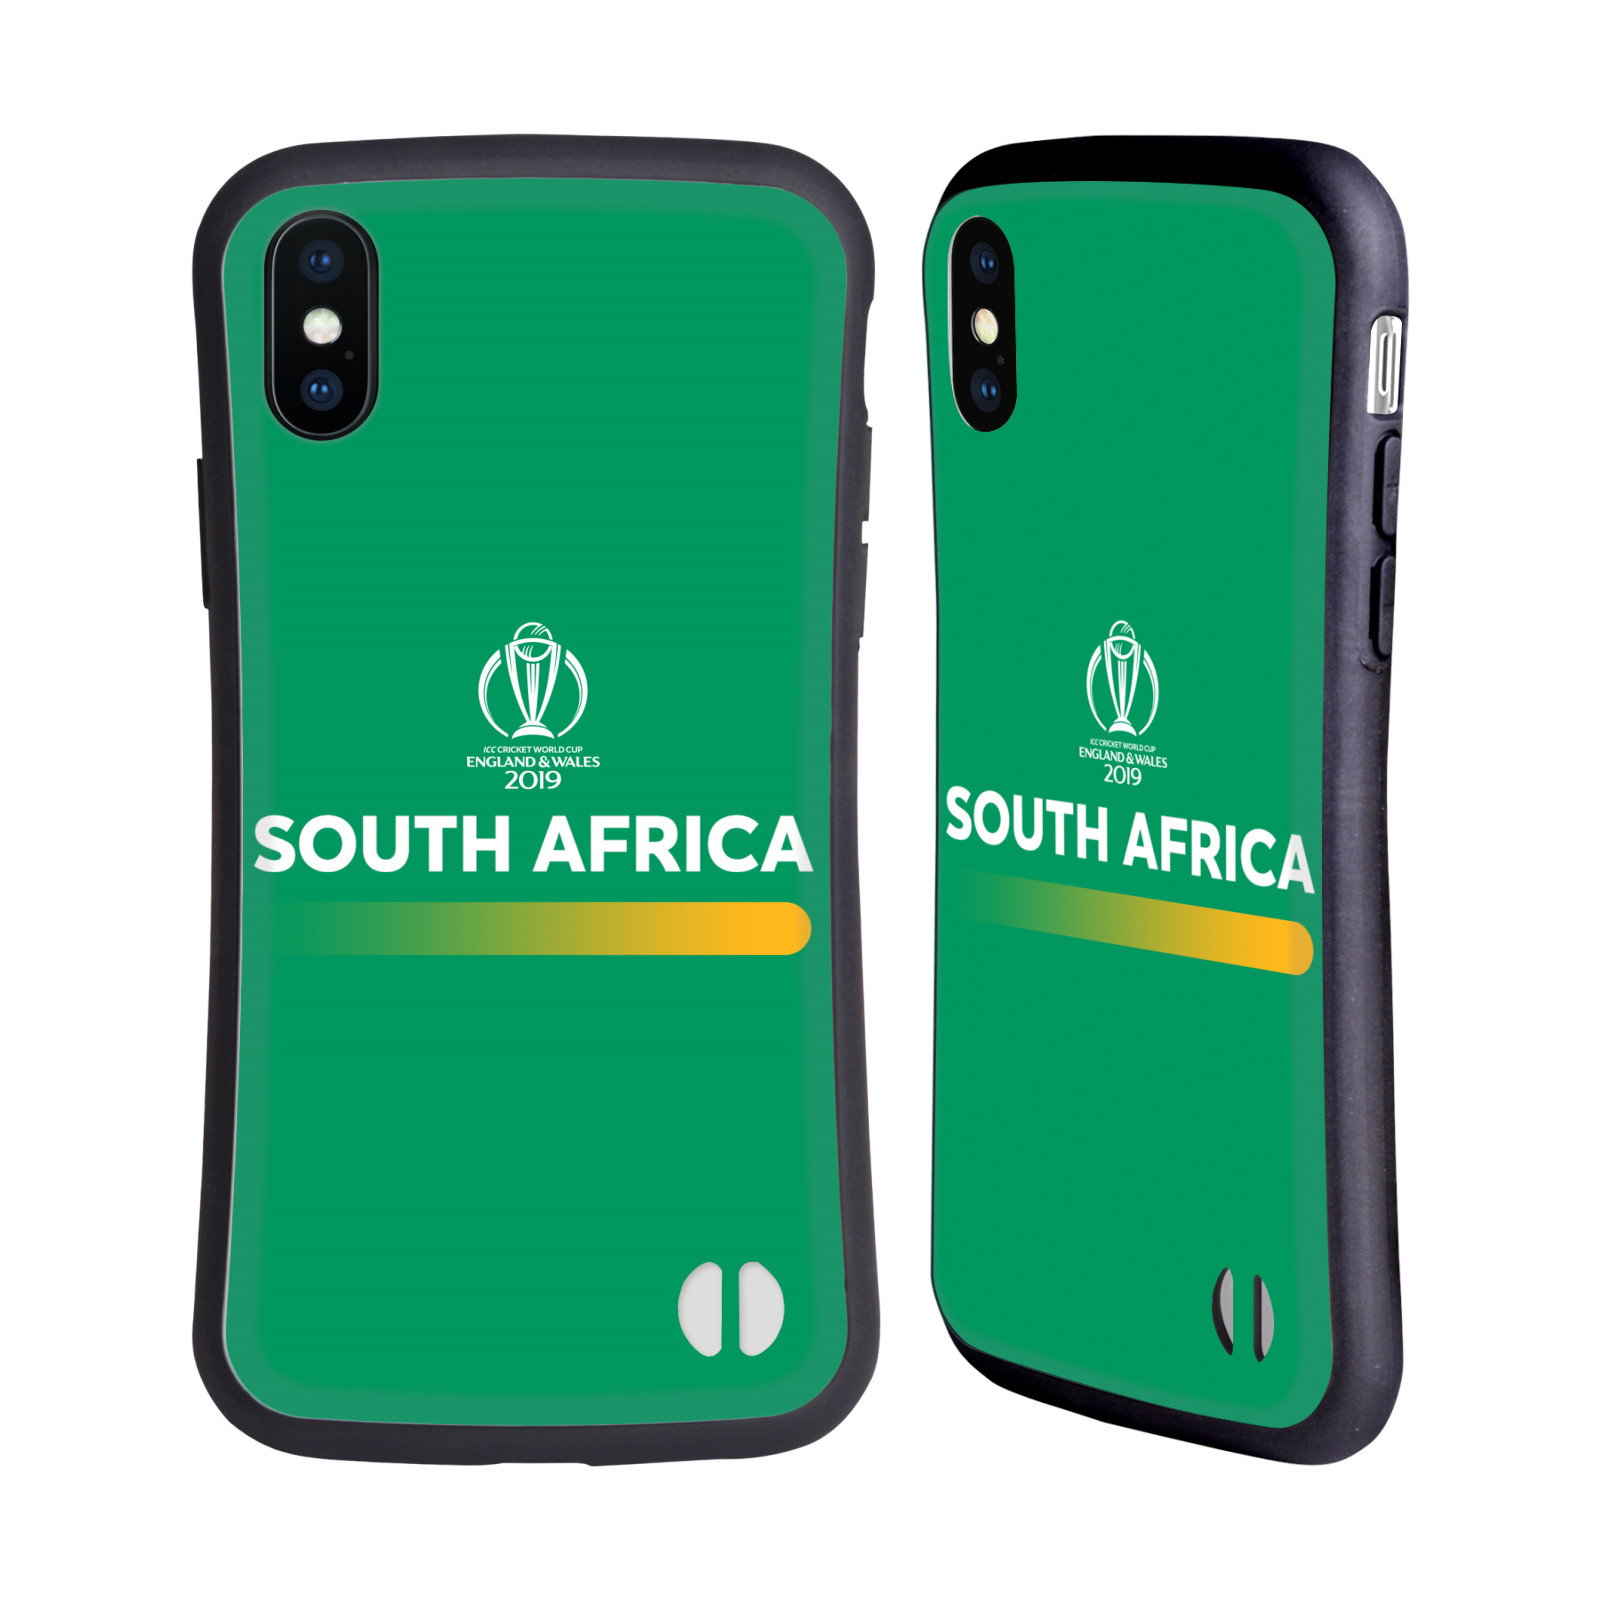 OFFICIAL-ICC-SOUTH-AFRICA-HYBRID-CASE-FOR-APPLE-iPHONES-PHONES